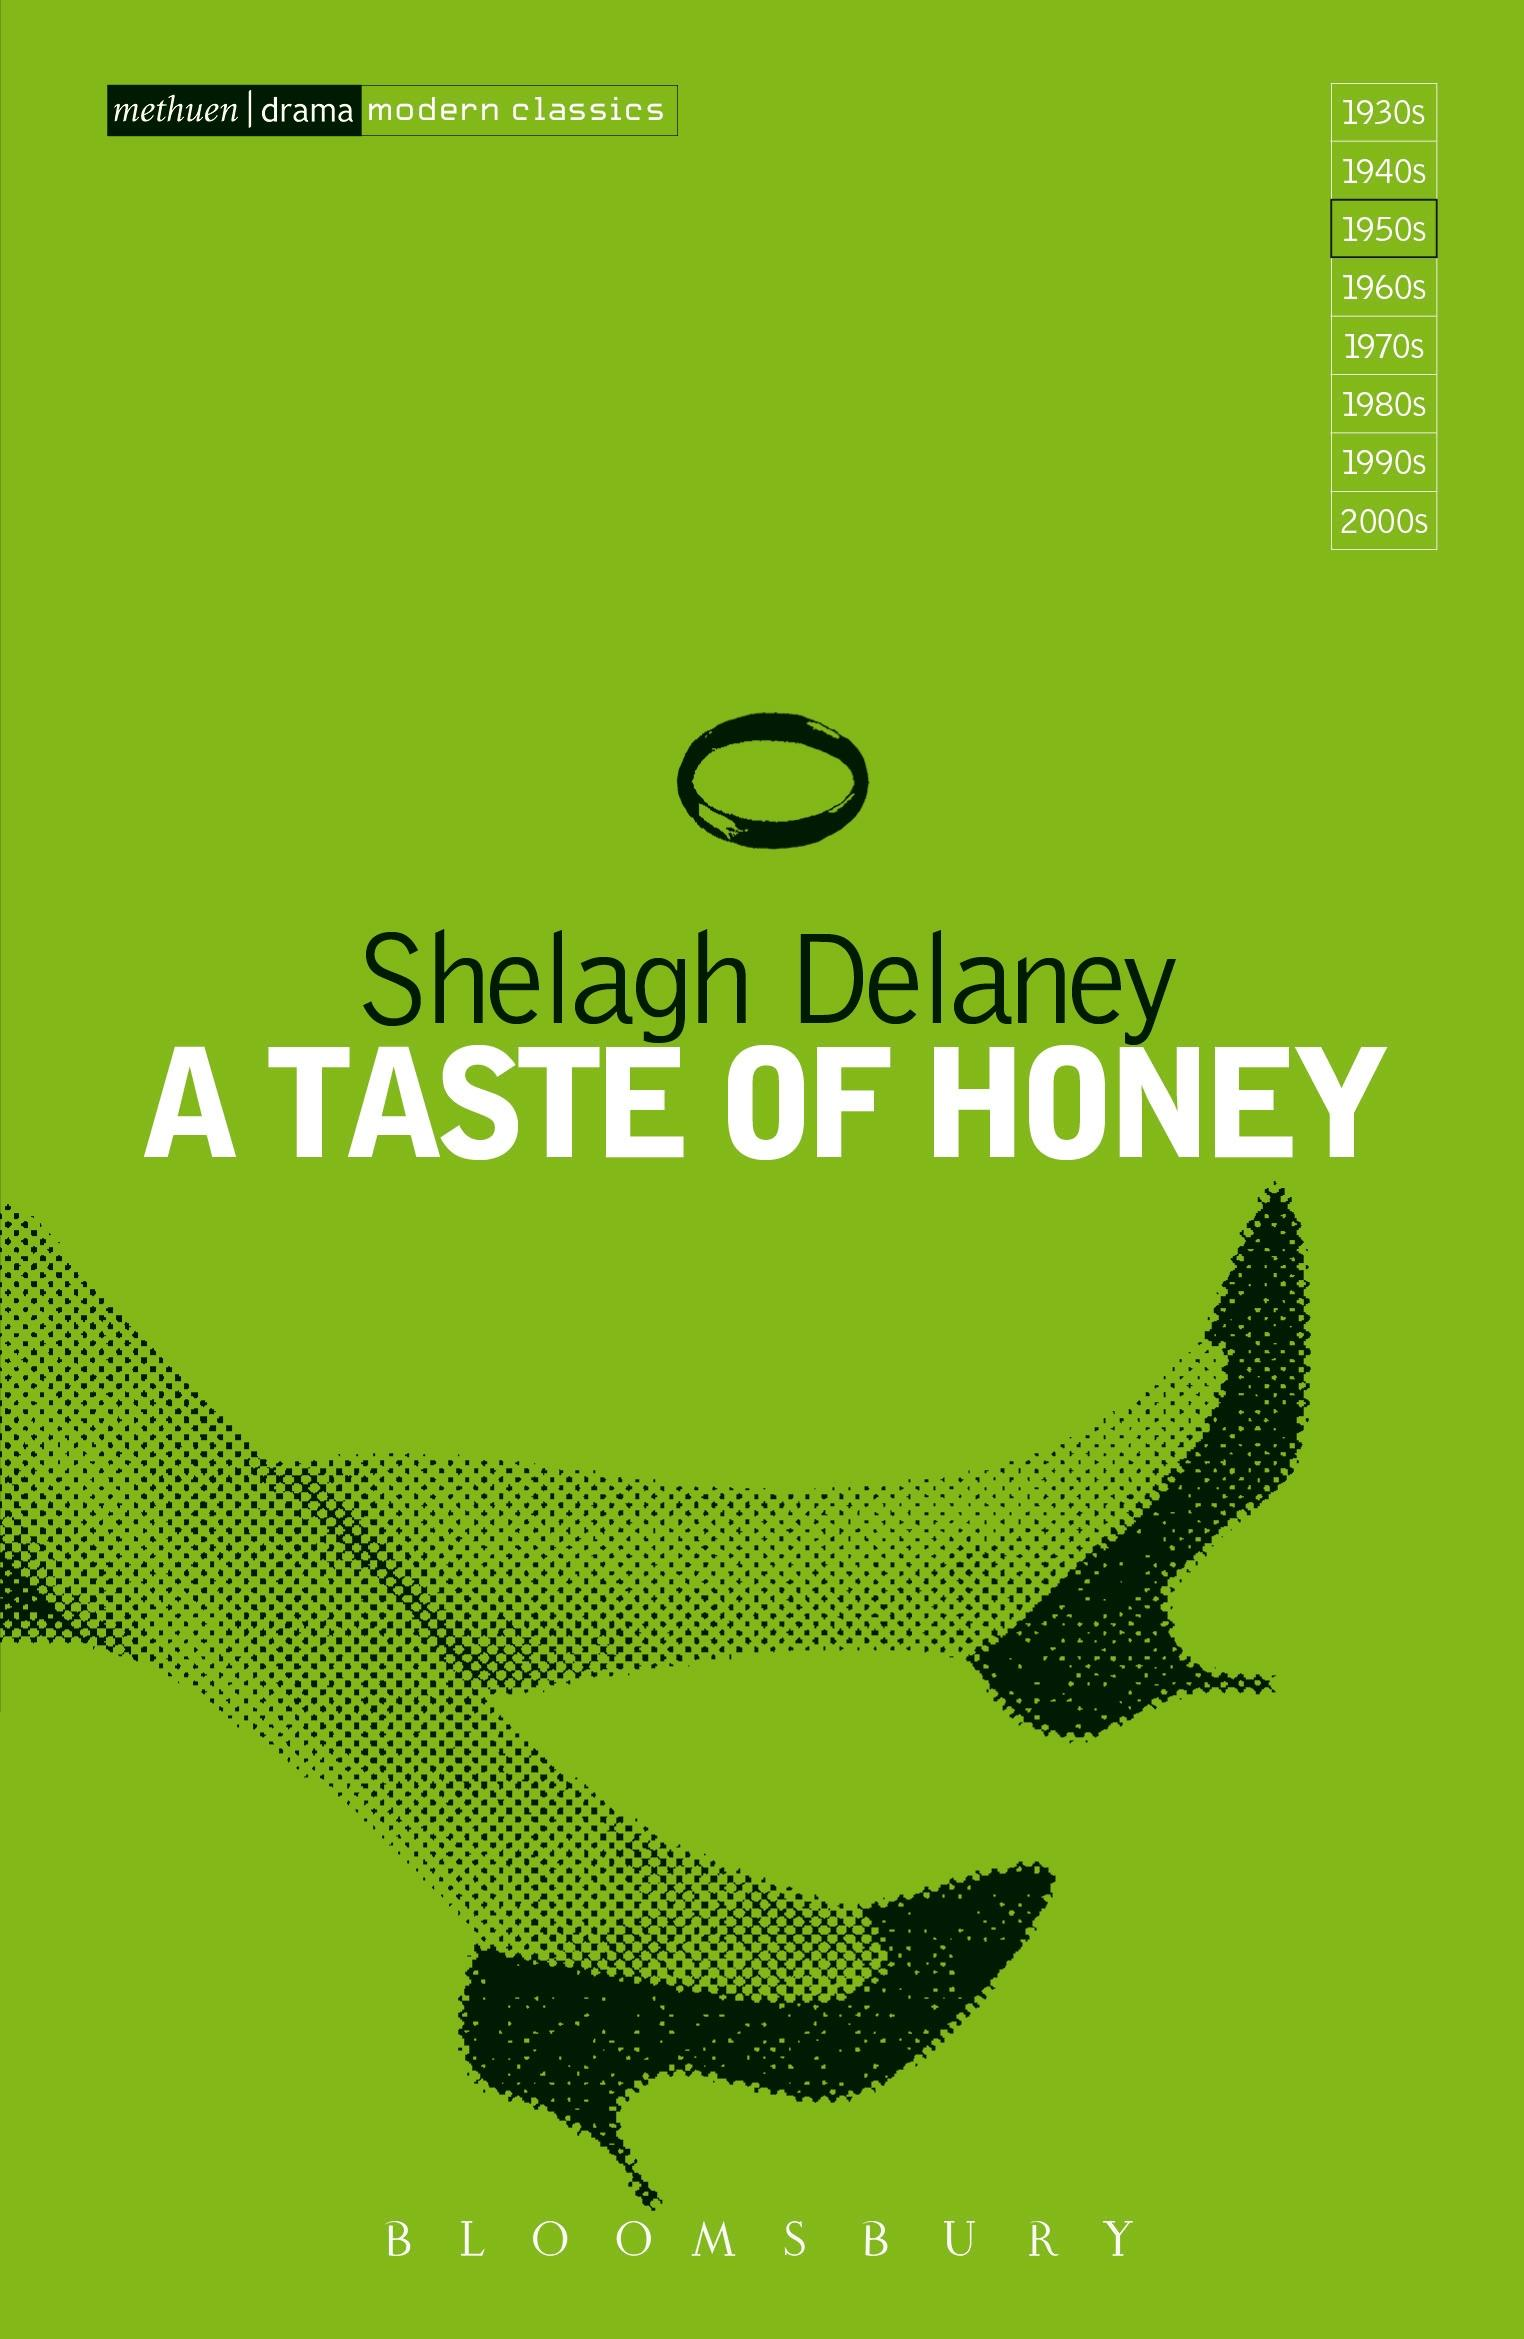 comparative study a taste of honey Study guide for a taste of honey a taste of honey study guide contains a biography of shelagh delaney, literature essays, quiz questions, major themes, characters, and a full summary and analysis.